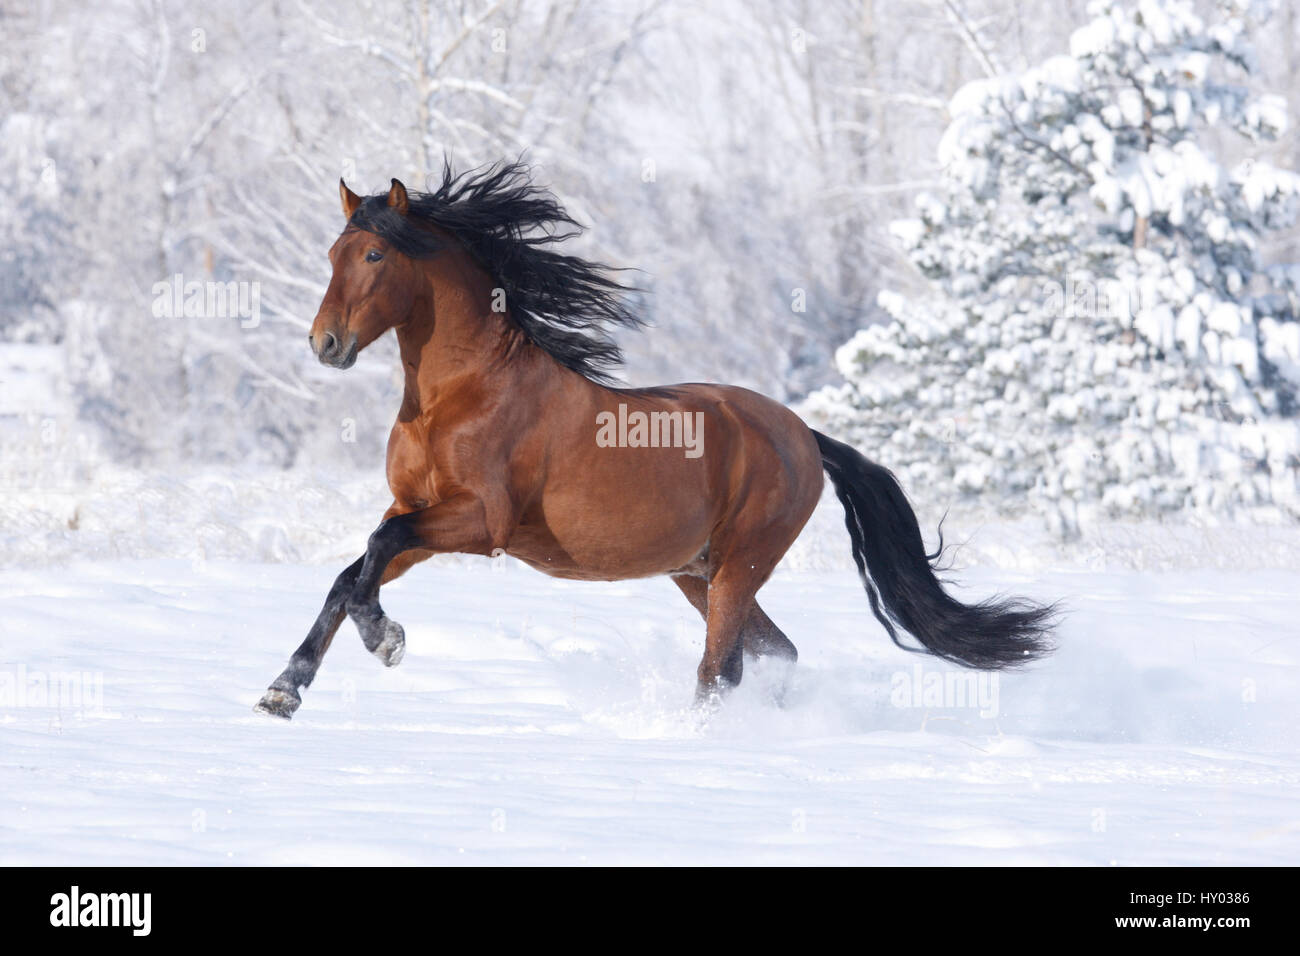 Bay Andalusian stallion running in the snow. Berthoud, Colorado, USA. - Stock Image